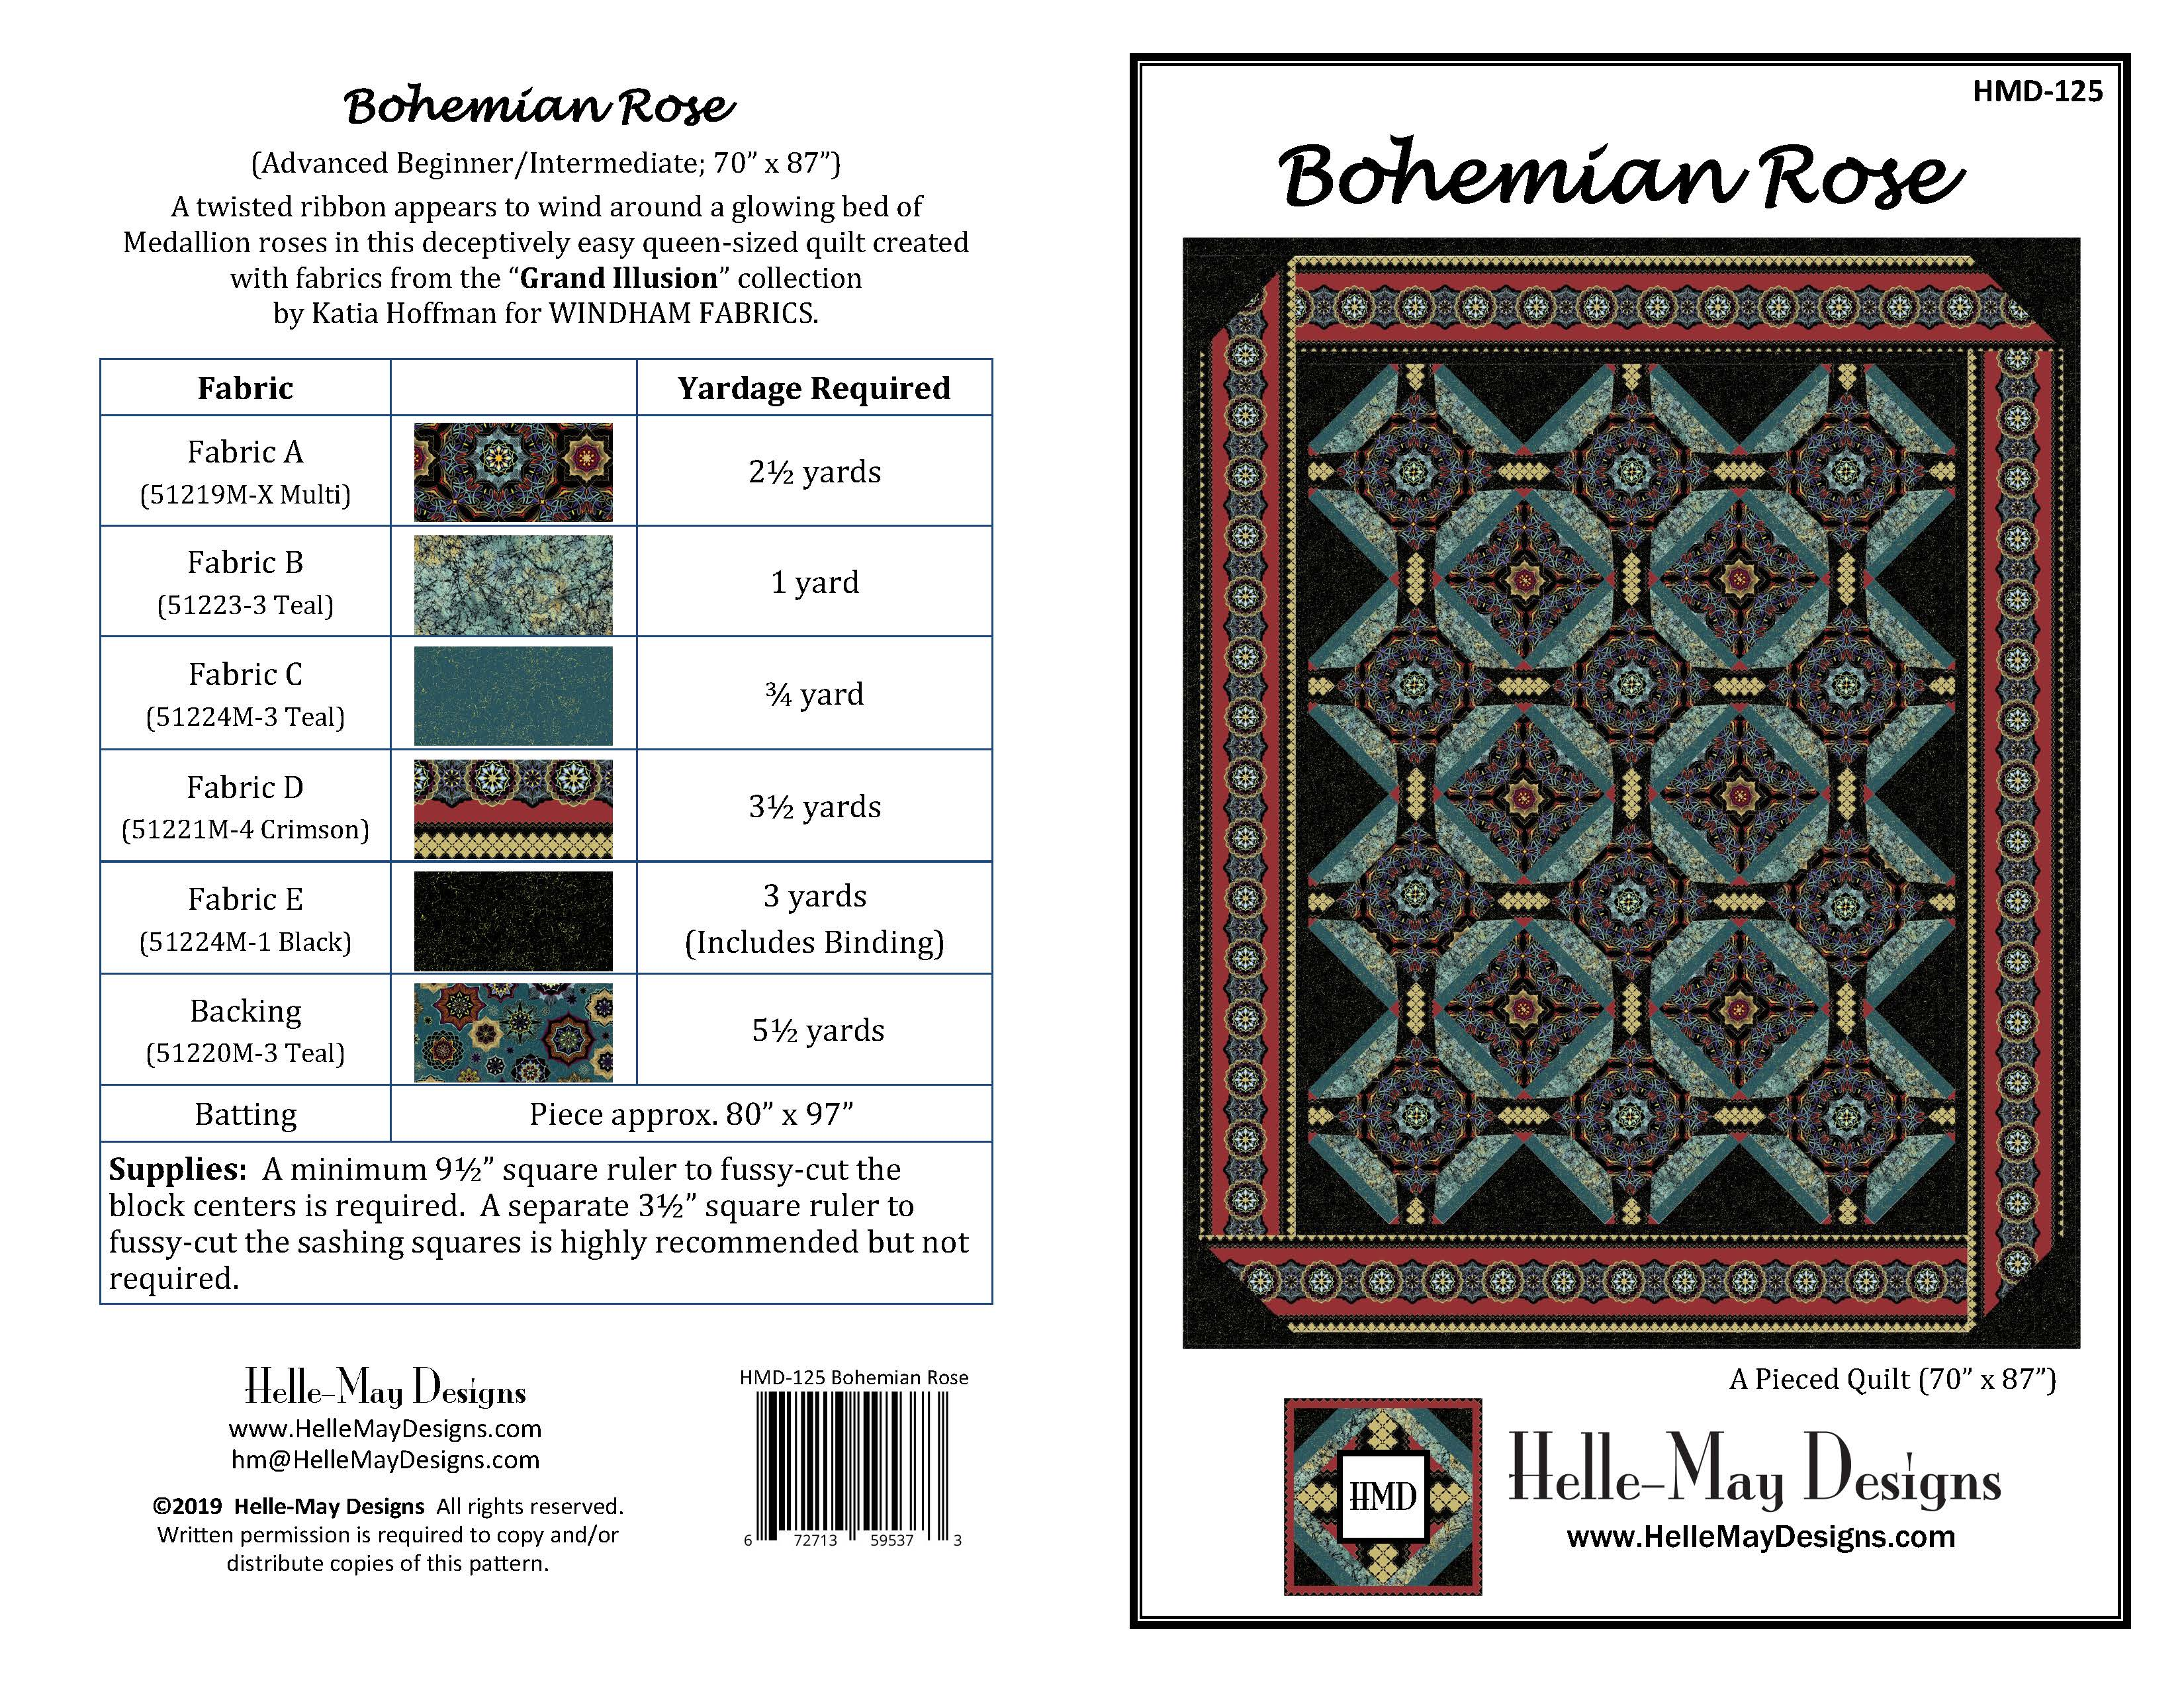 BOHEMIAN ROSE by Helle-May Designson the